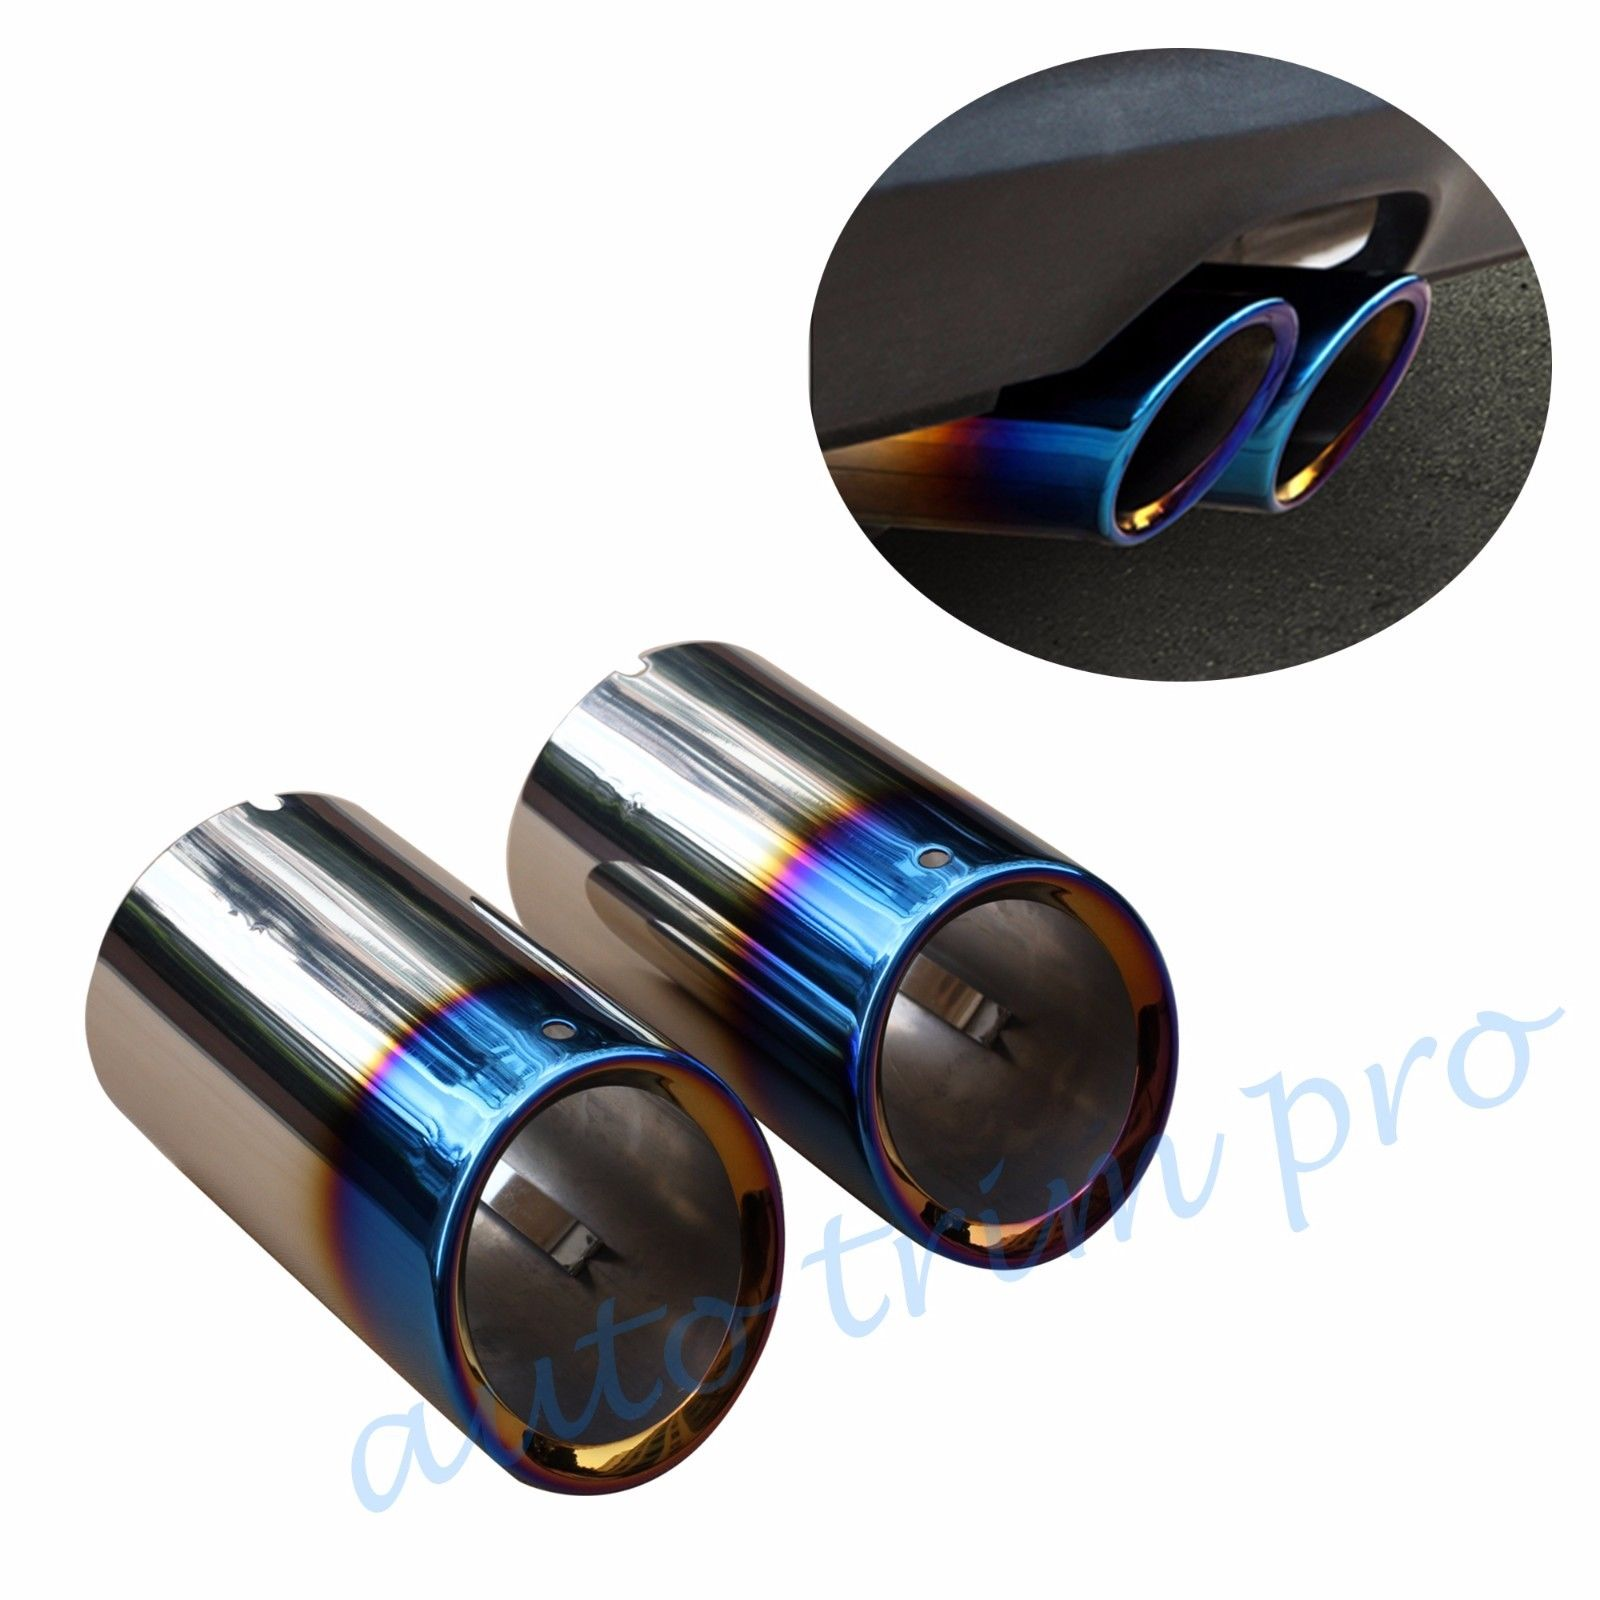 Rear Muffler Exhaust Tailpipe End Tip Fit For BMW F25 X3 xDrive 2011 2014 Accessories Decorate